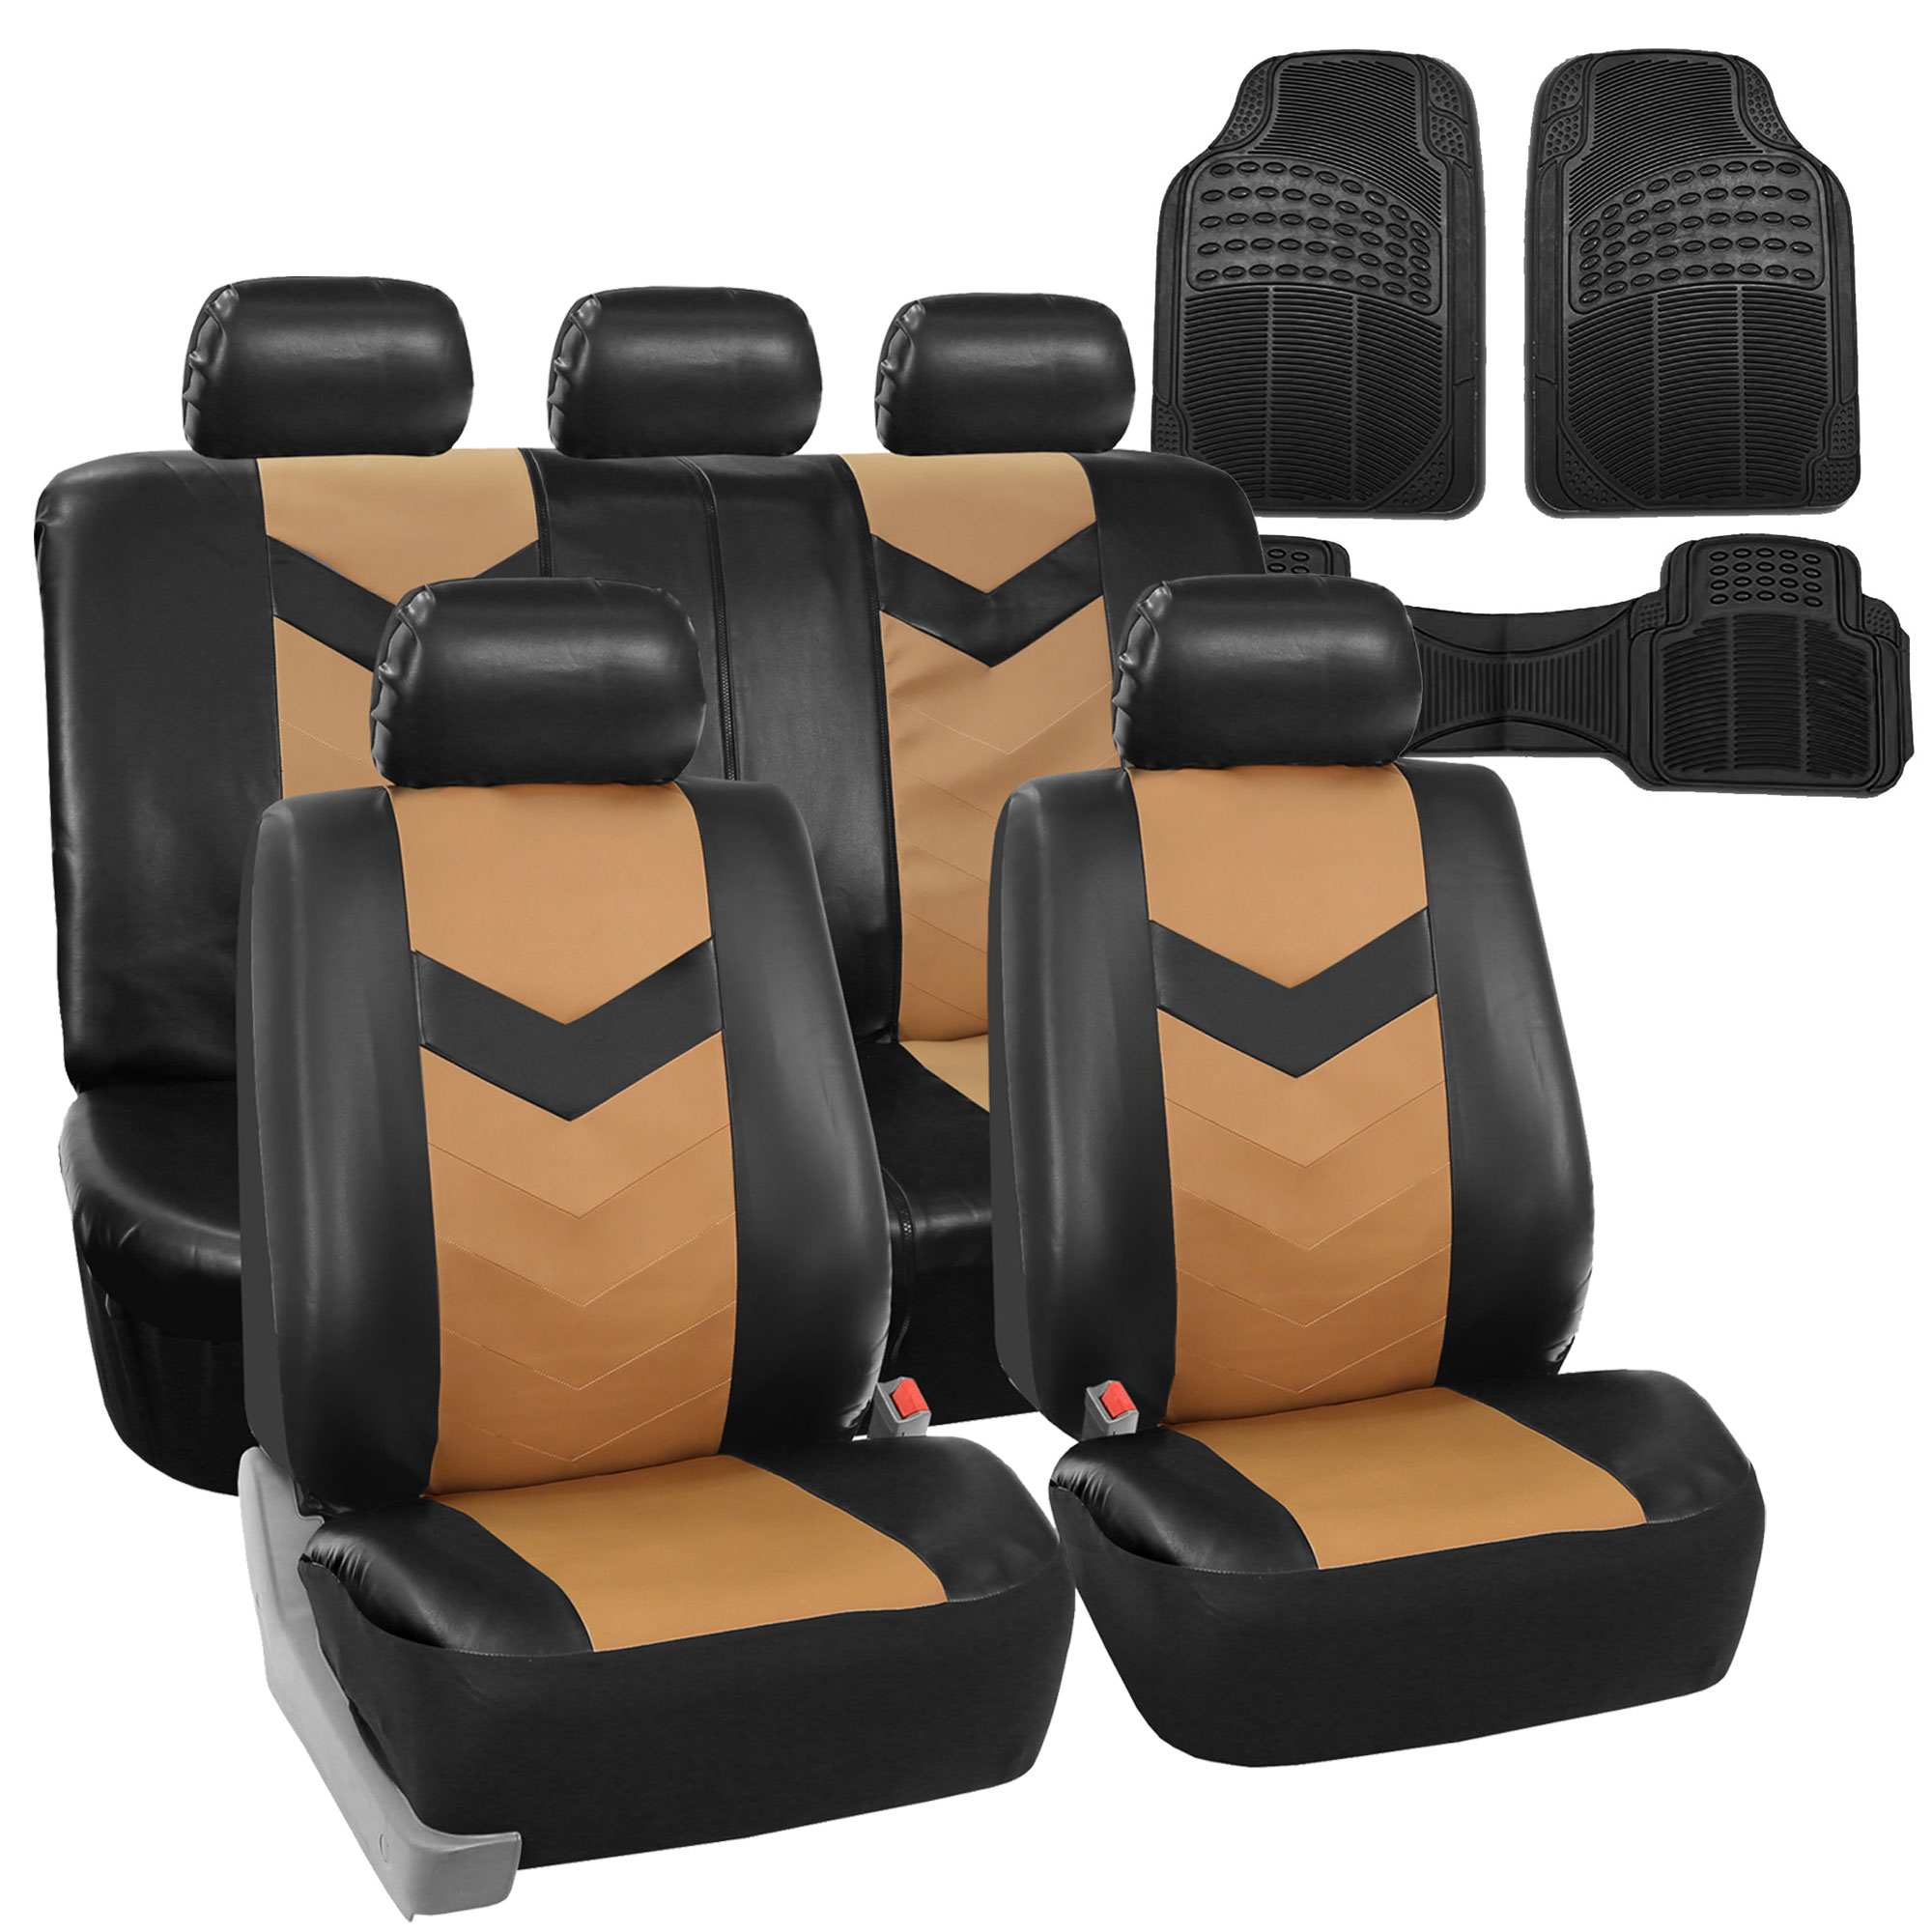 PU Leather Car Seat Covers & Black All Weather Floor Mats